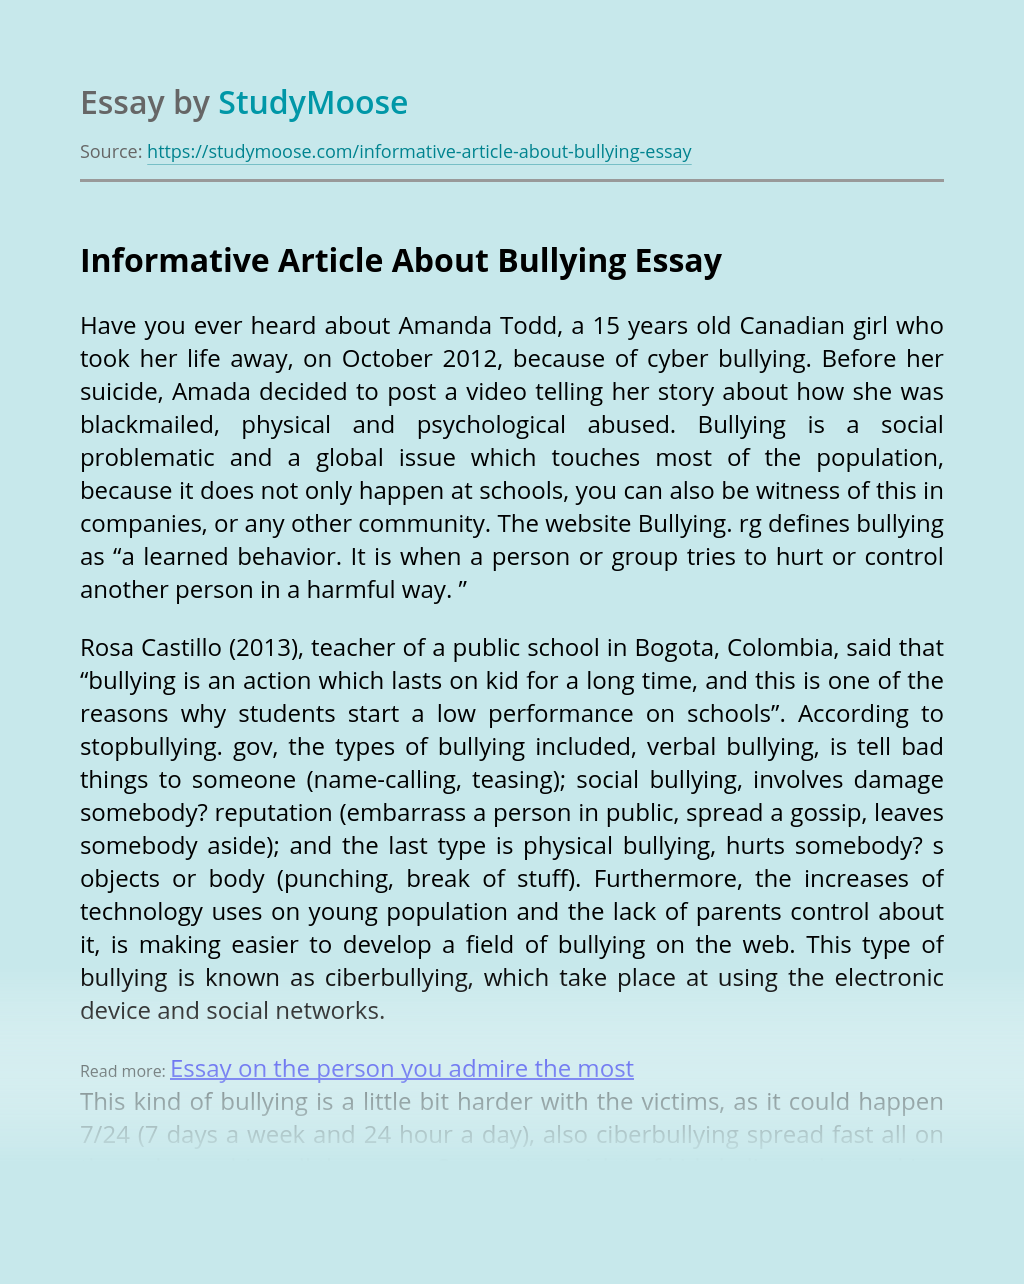 Informative Article About Bullying